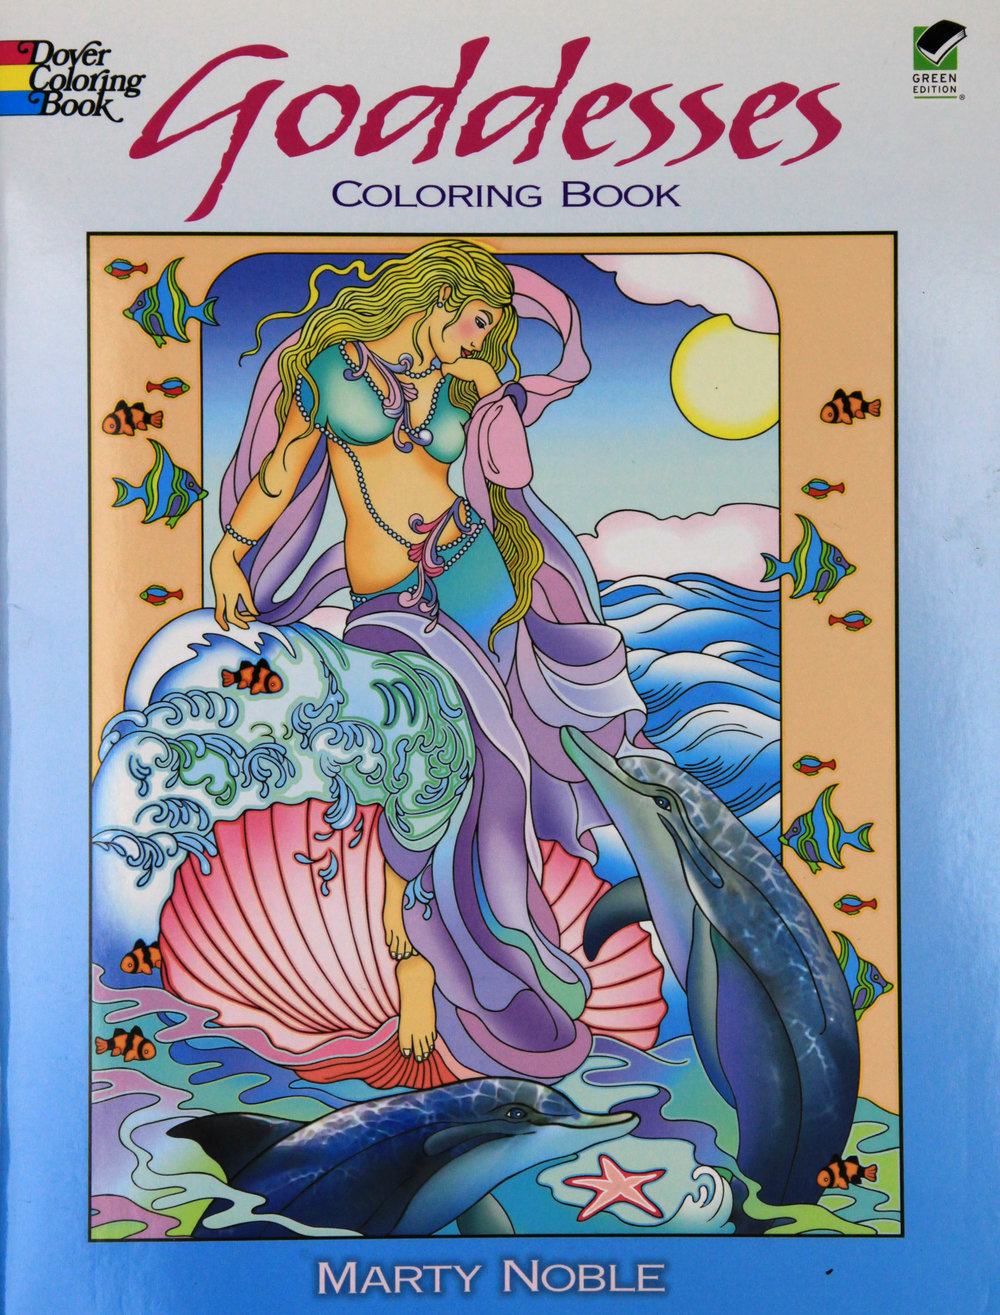 Goddesses_Coloring_Book_1_.jpg